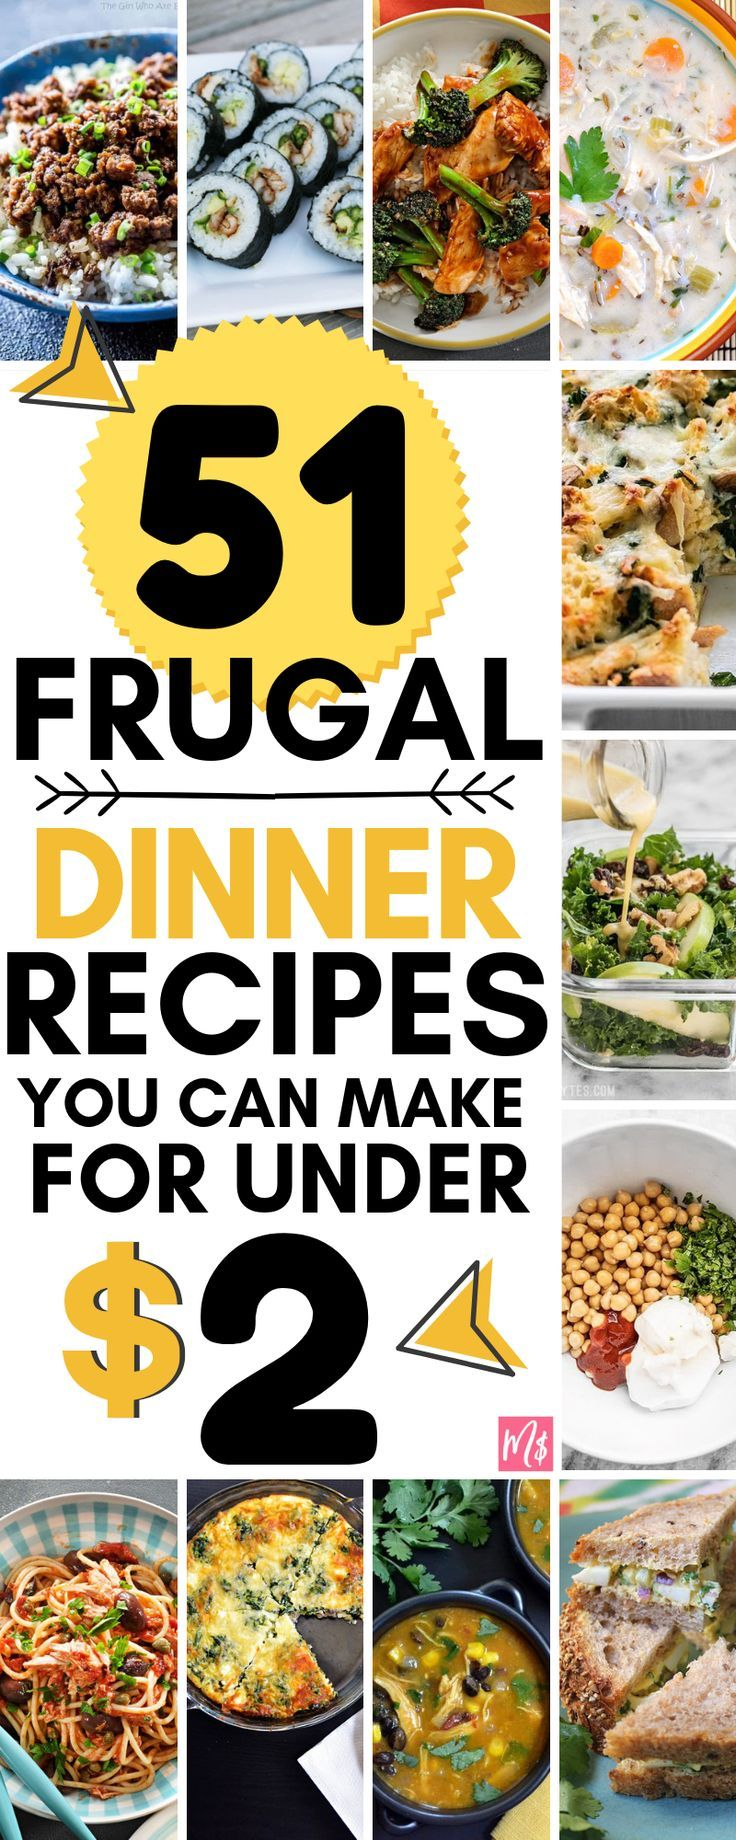 51 Healthy Frugal Dinner Recipes You Can Make for Under $2